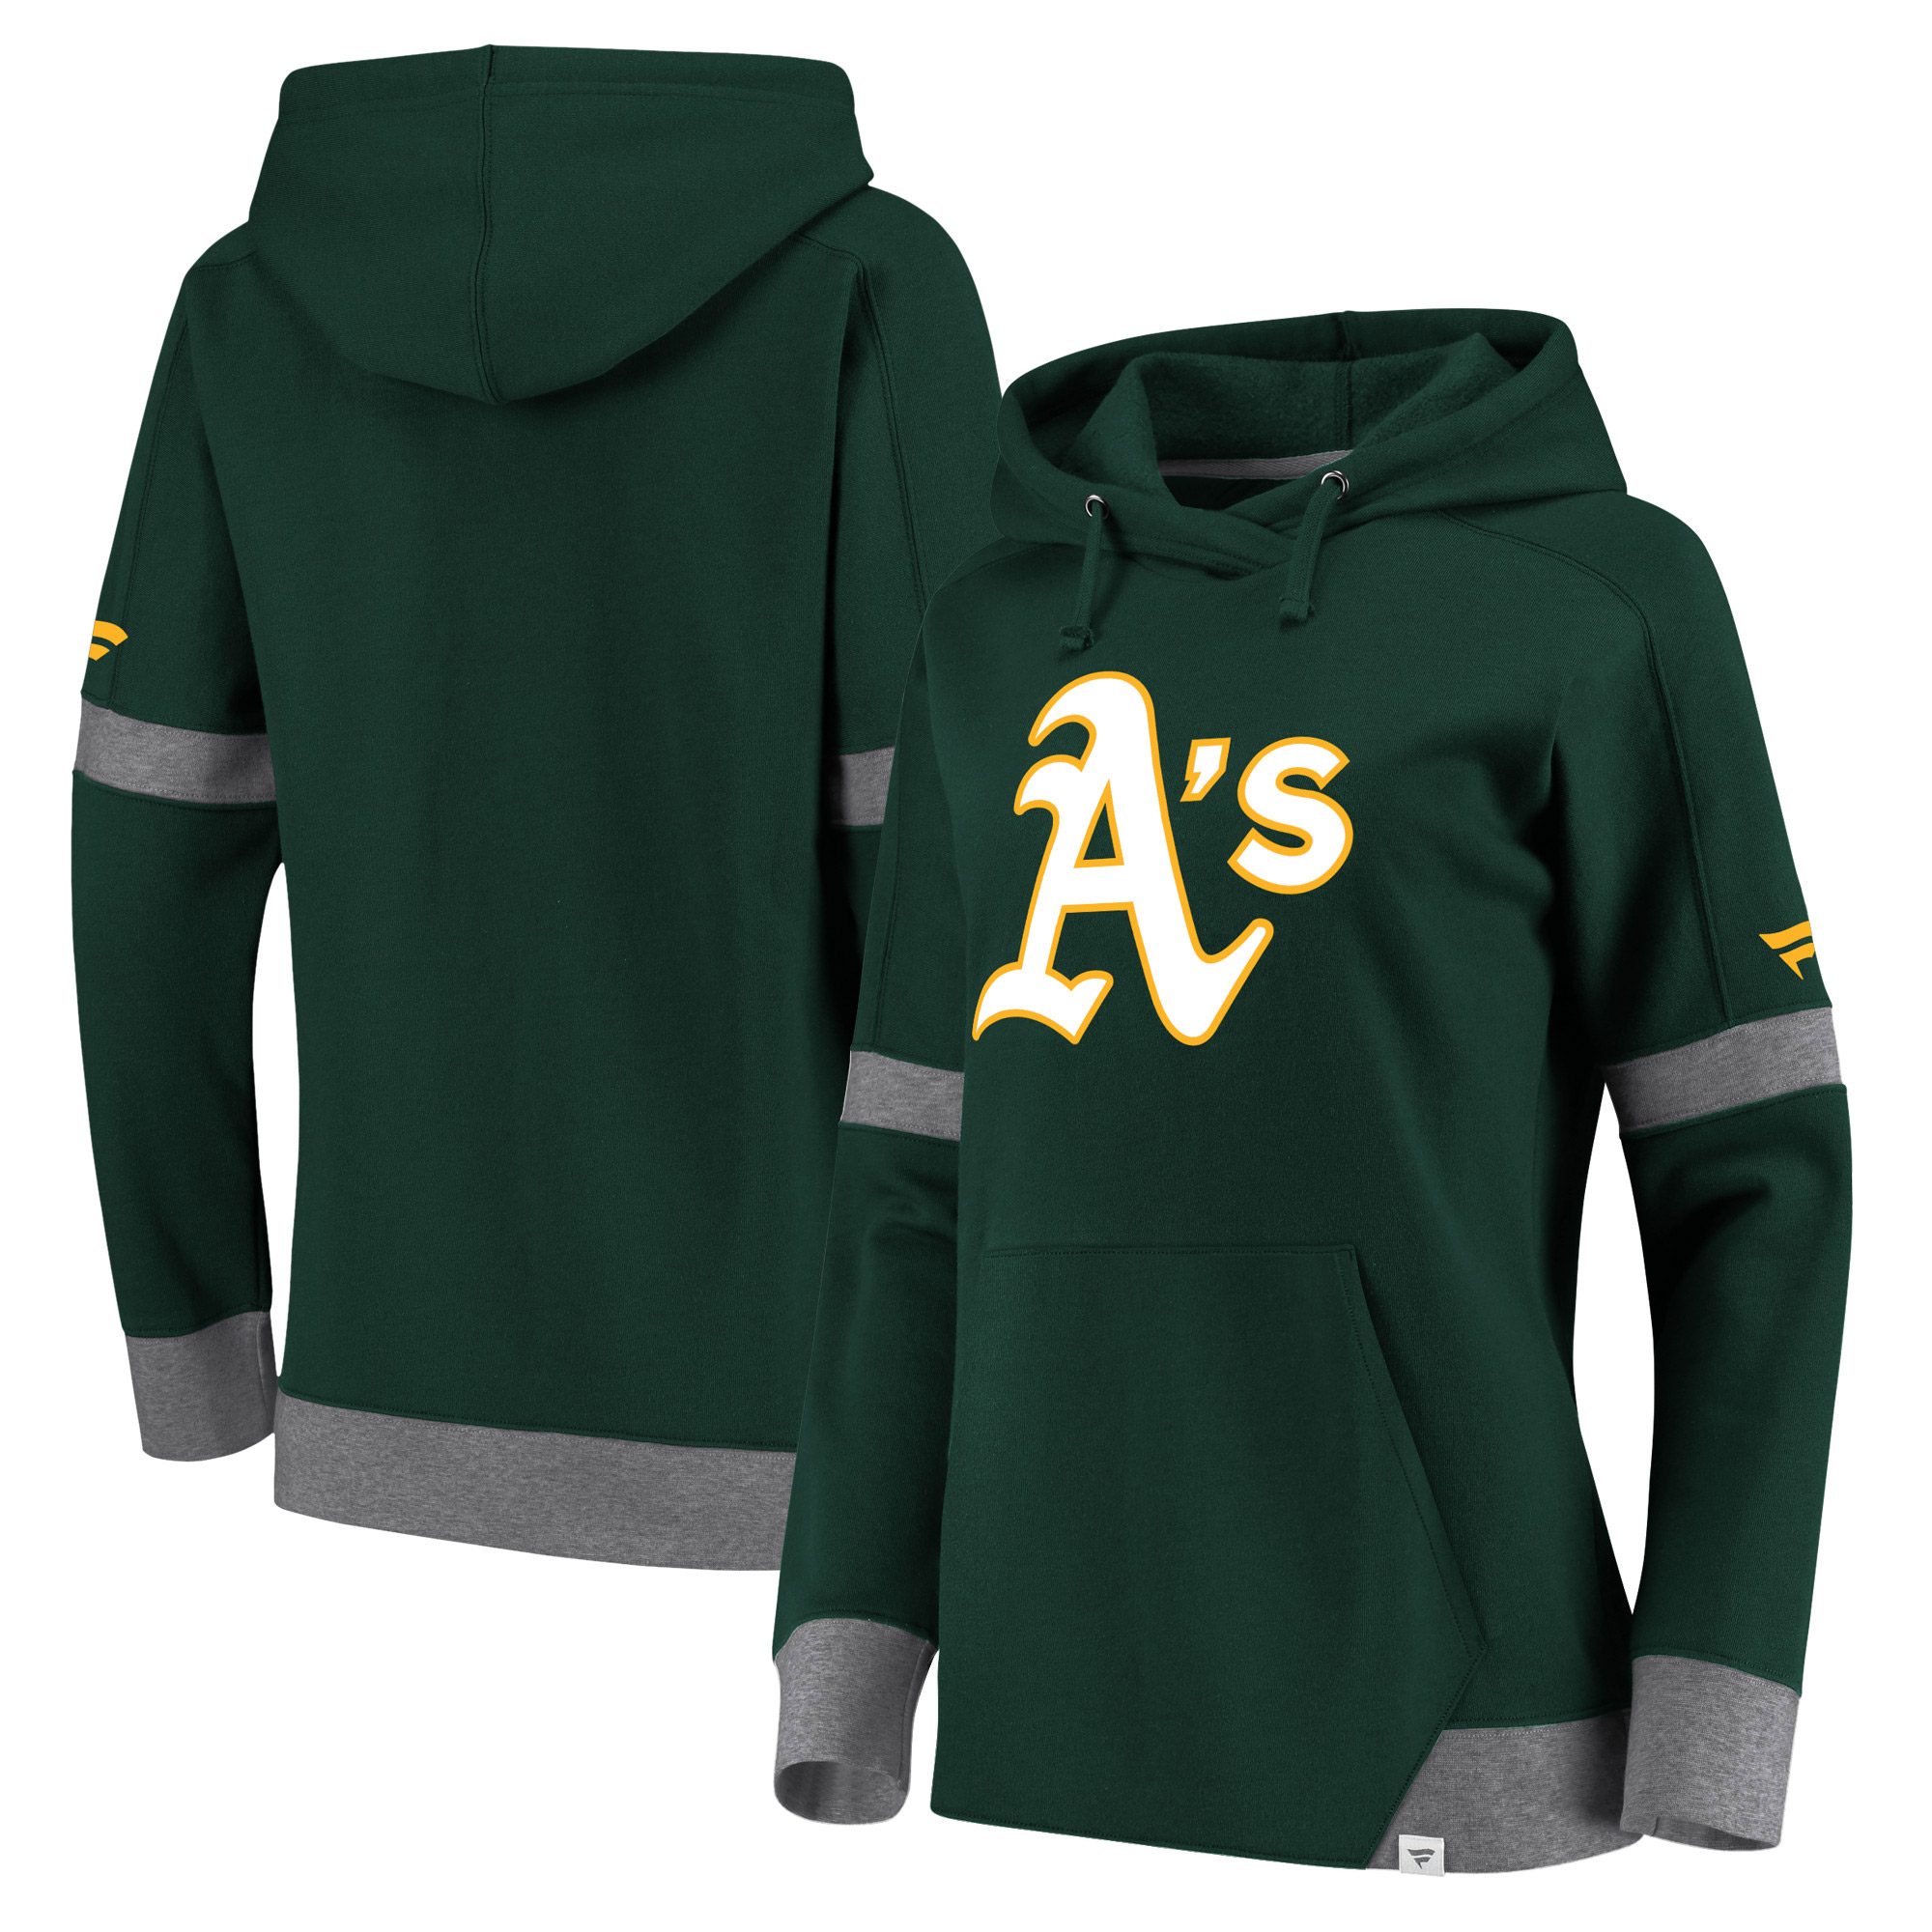 Oakland Athletics Fanatics Branded Women Iconic Fleece Pullover Hoodie - Green/Gray